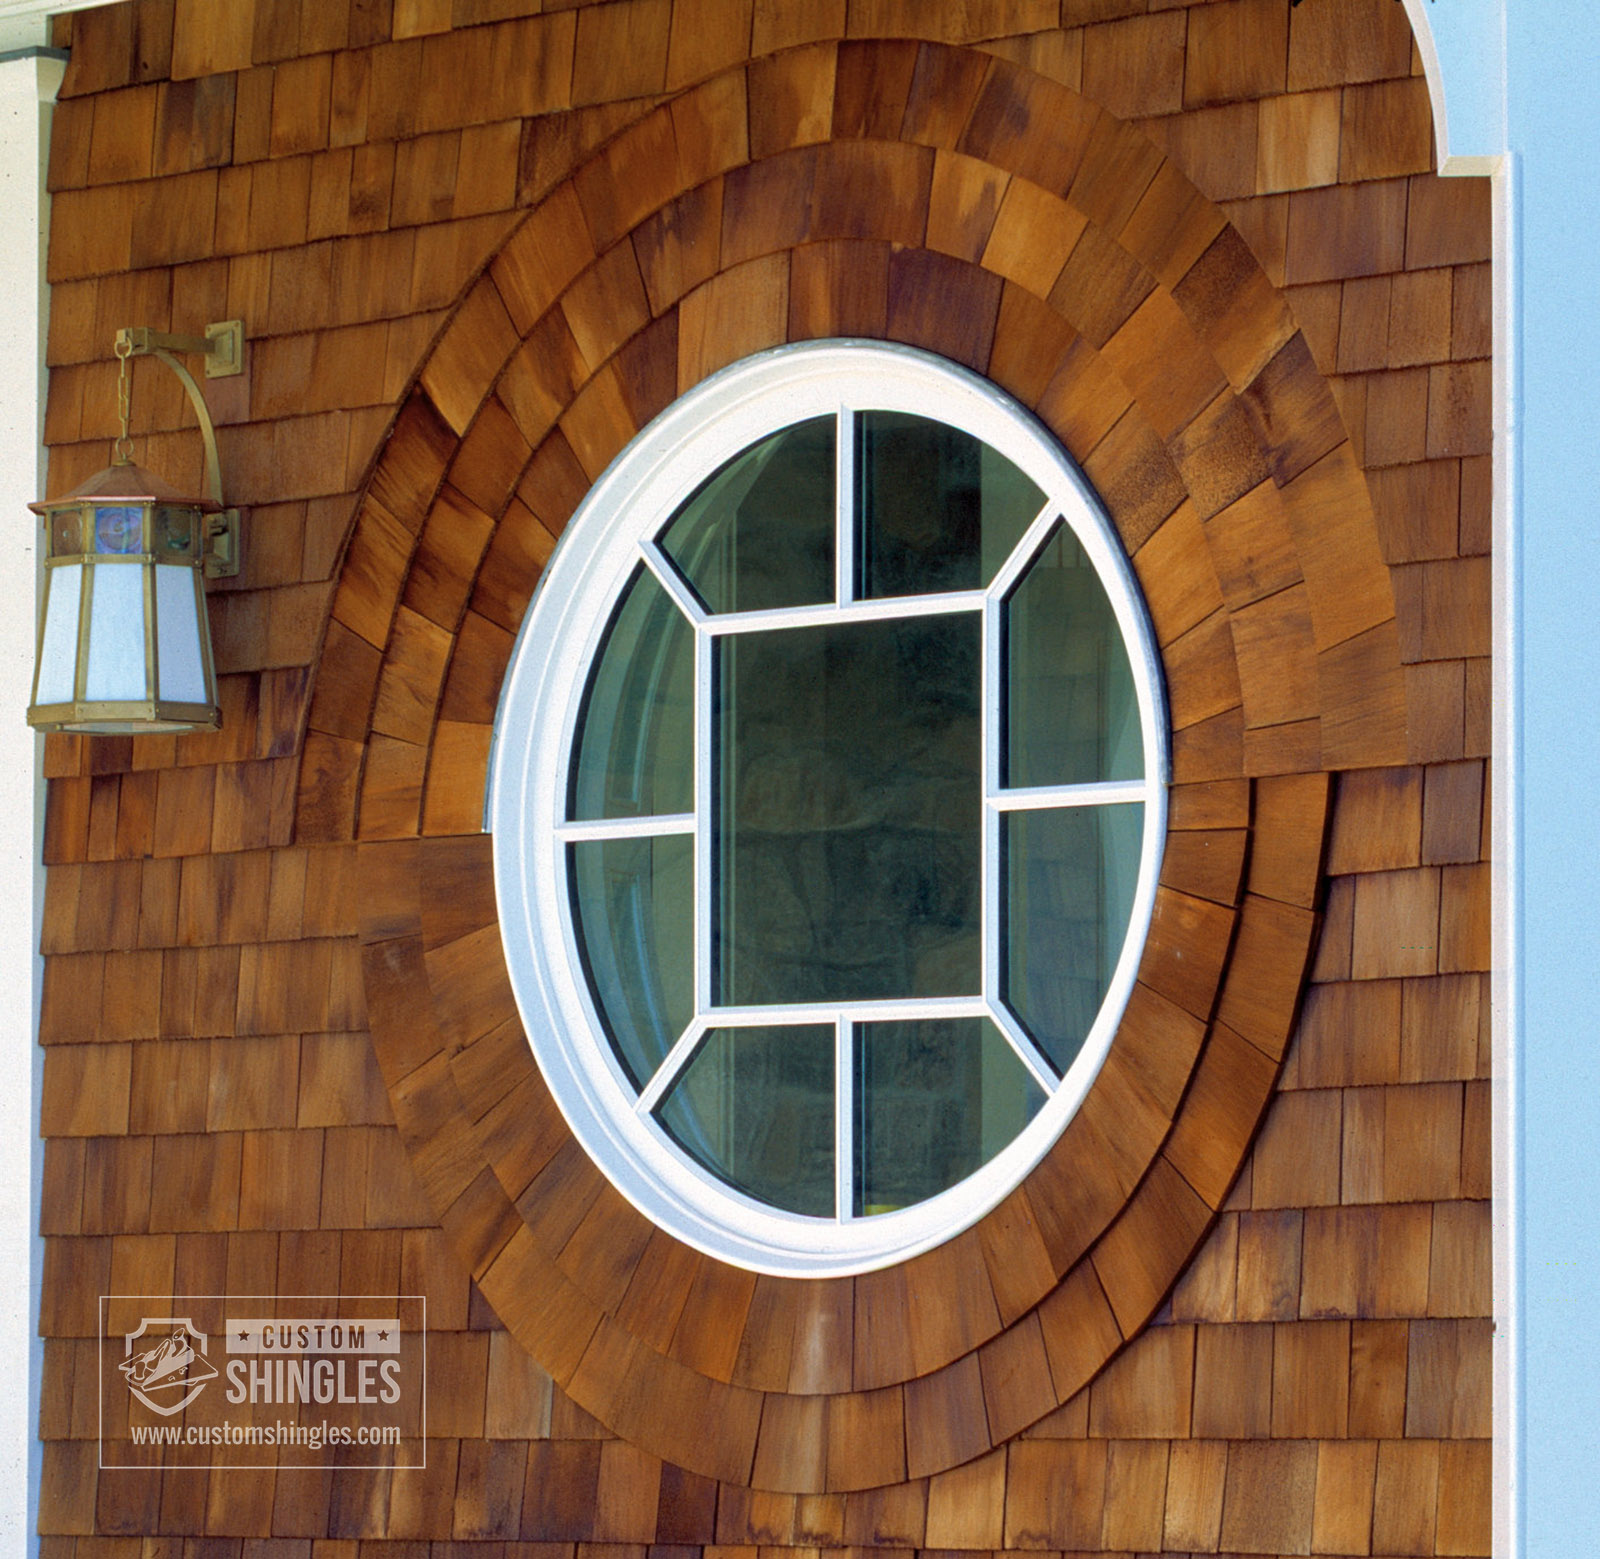 Circular Window Cedar Sidewall Shingles Detail copy.jpg